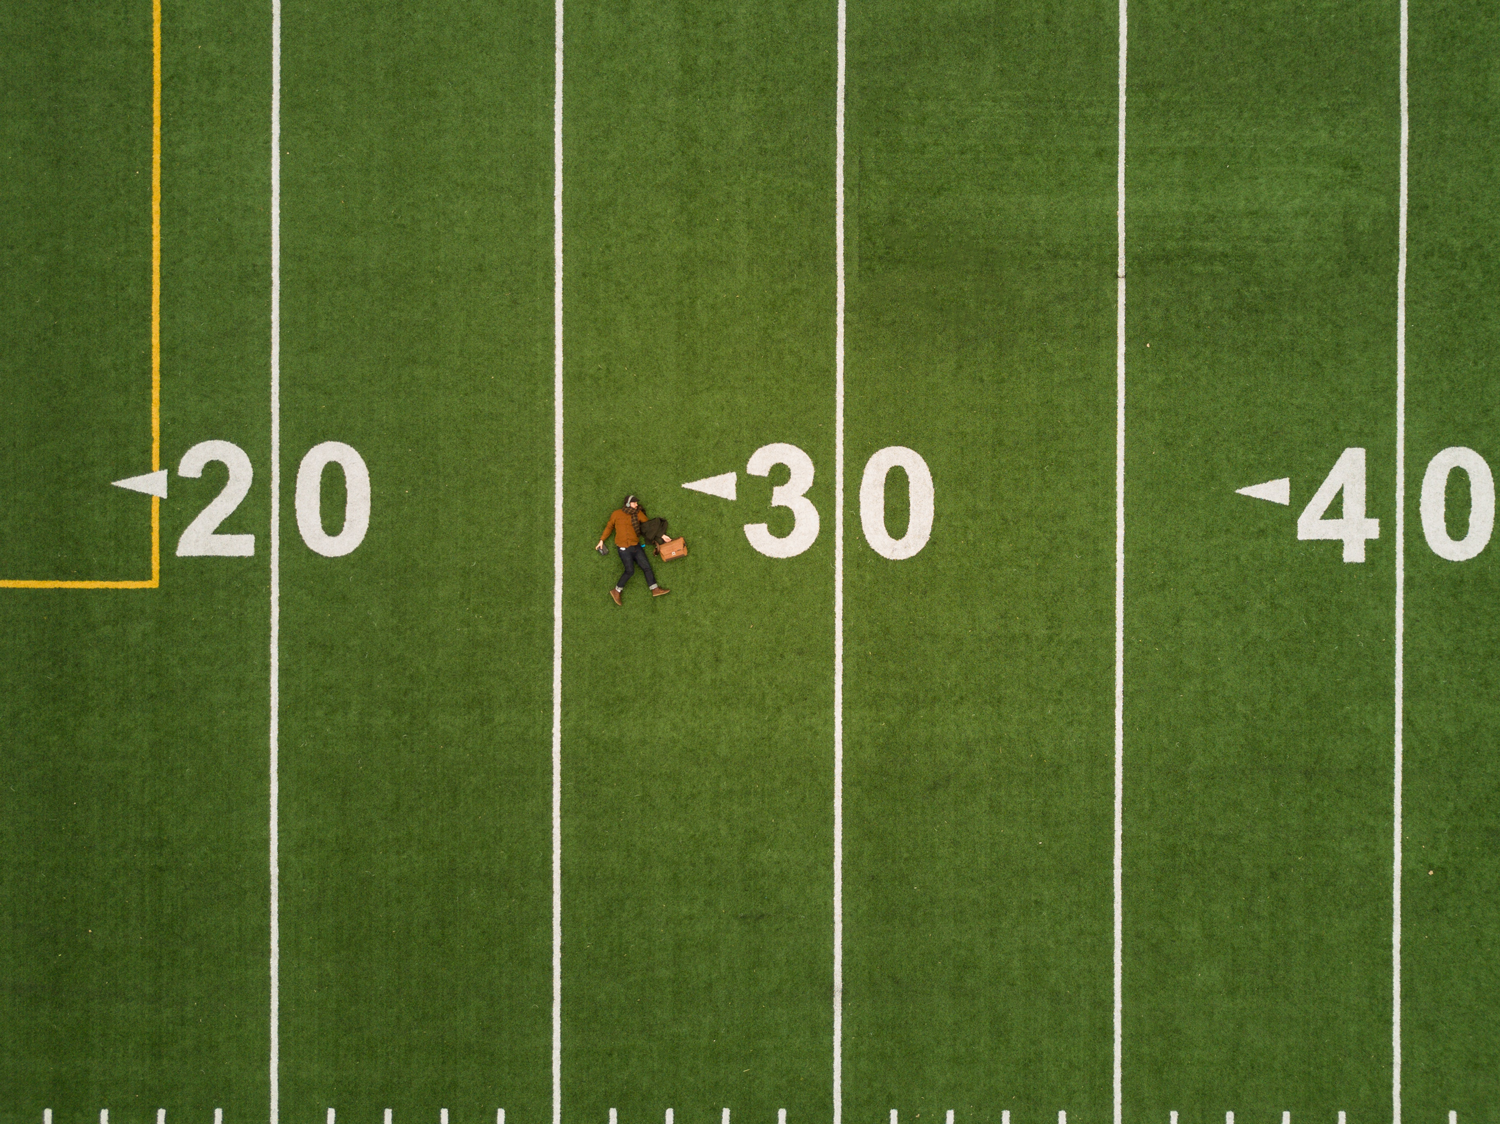 aerial-football-field-self-portrait-drone-martin-reisch-unsplash.png